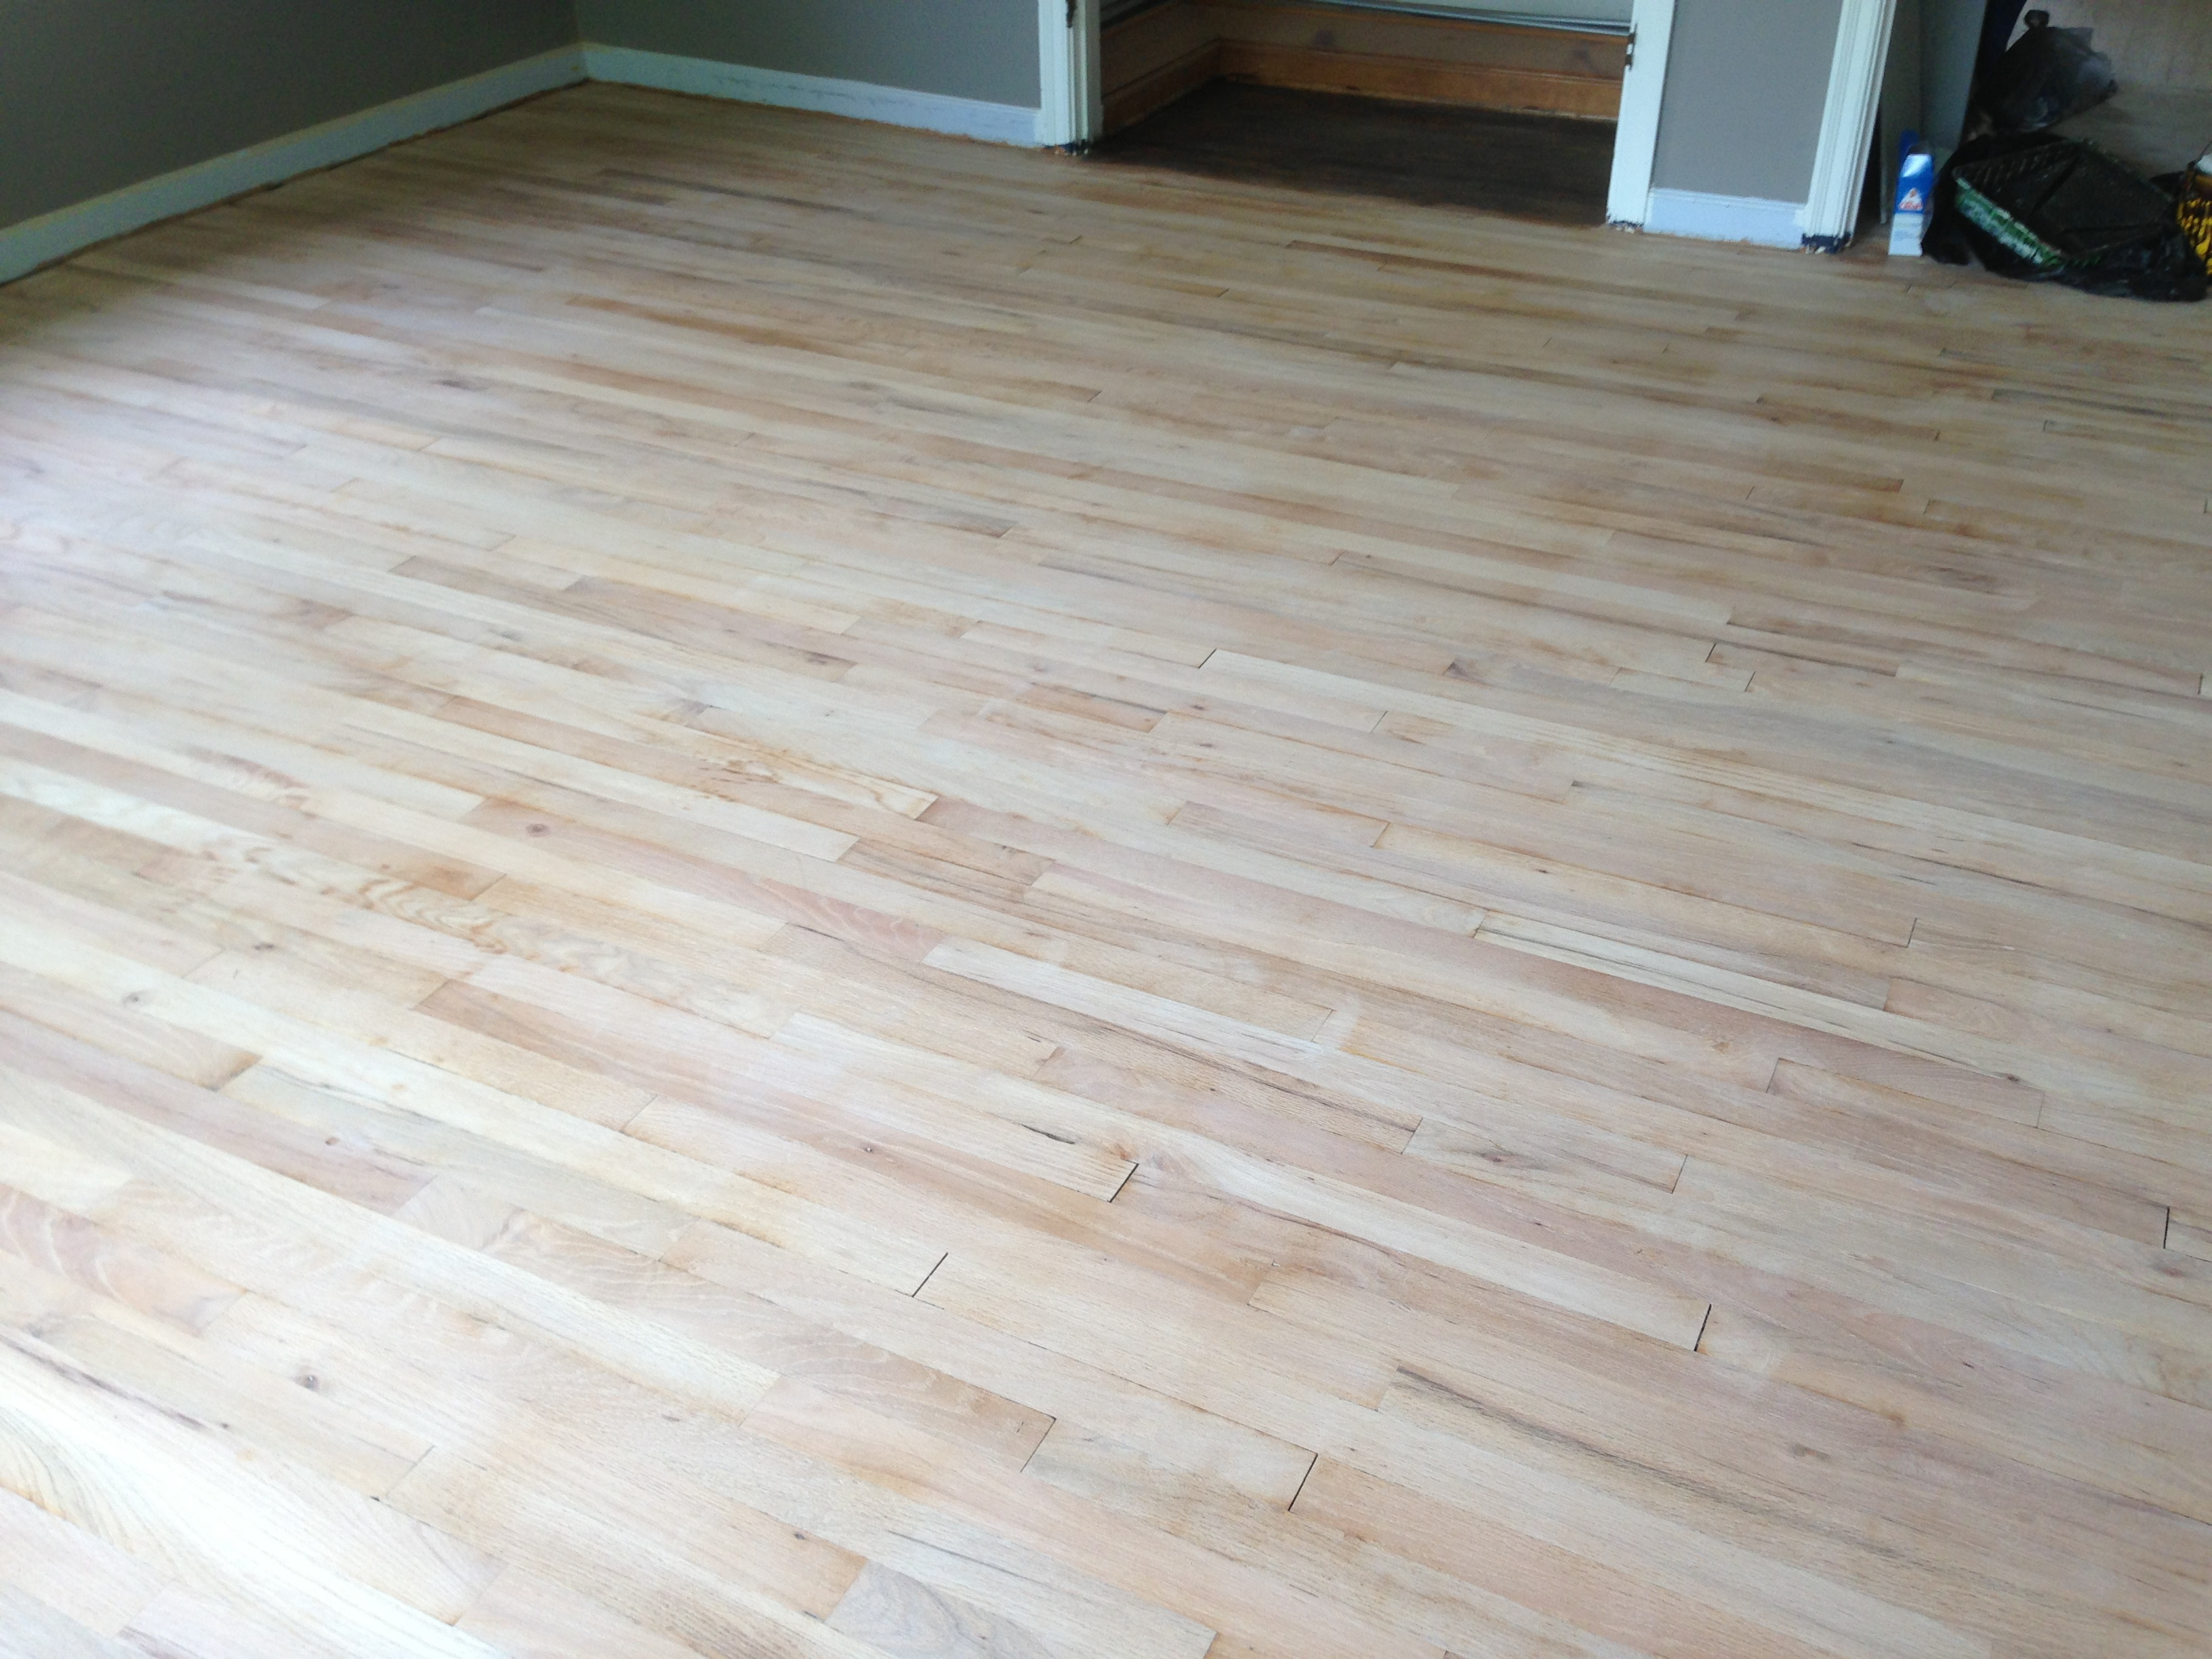 hardwood floor refinishing estimate costs of floors flair intended for after tediously sanding the floors we were ready for the next step of staining and sealing the floors here is a picture of the floors pre staining